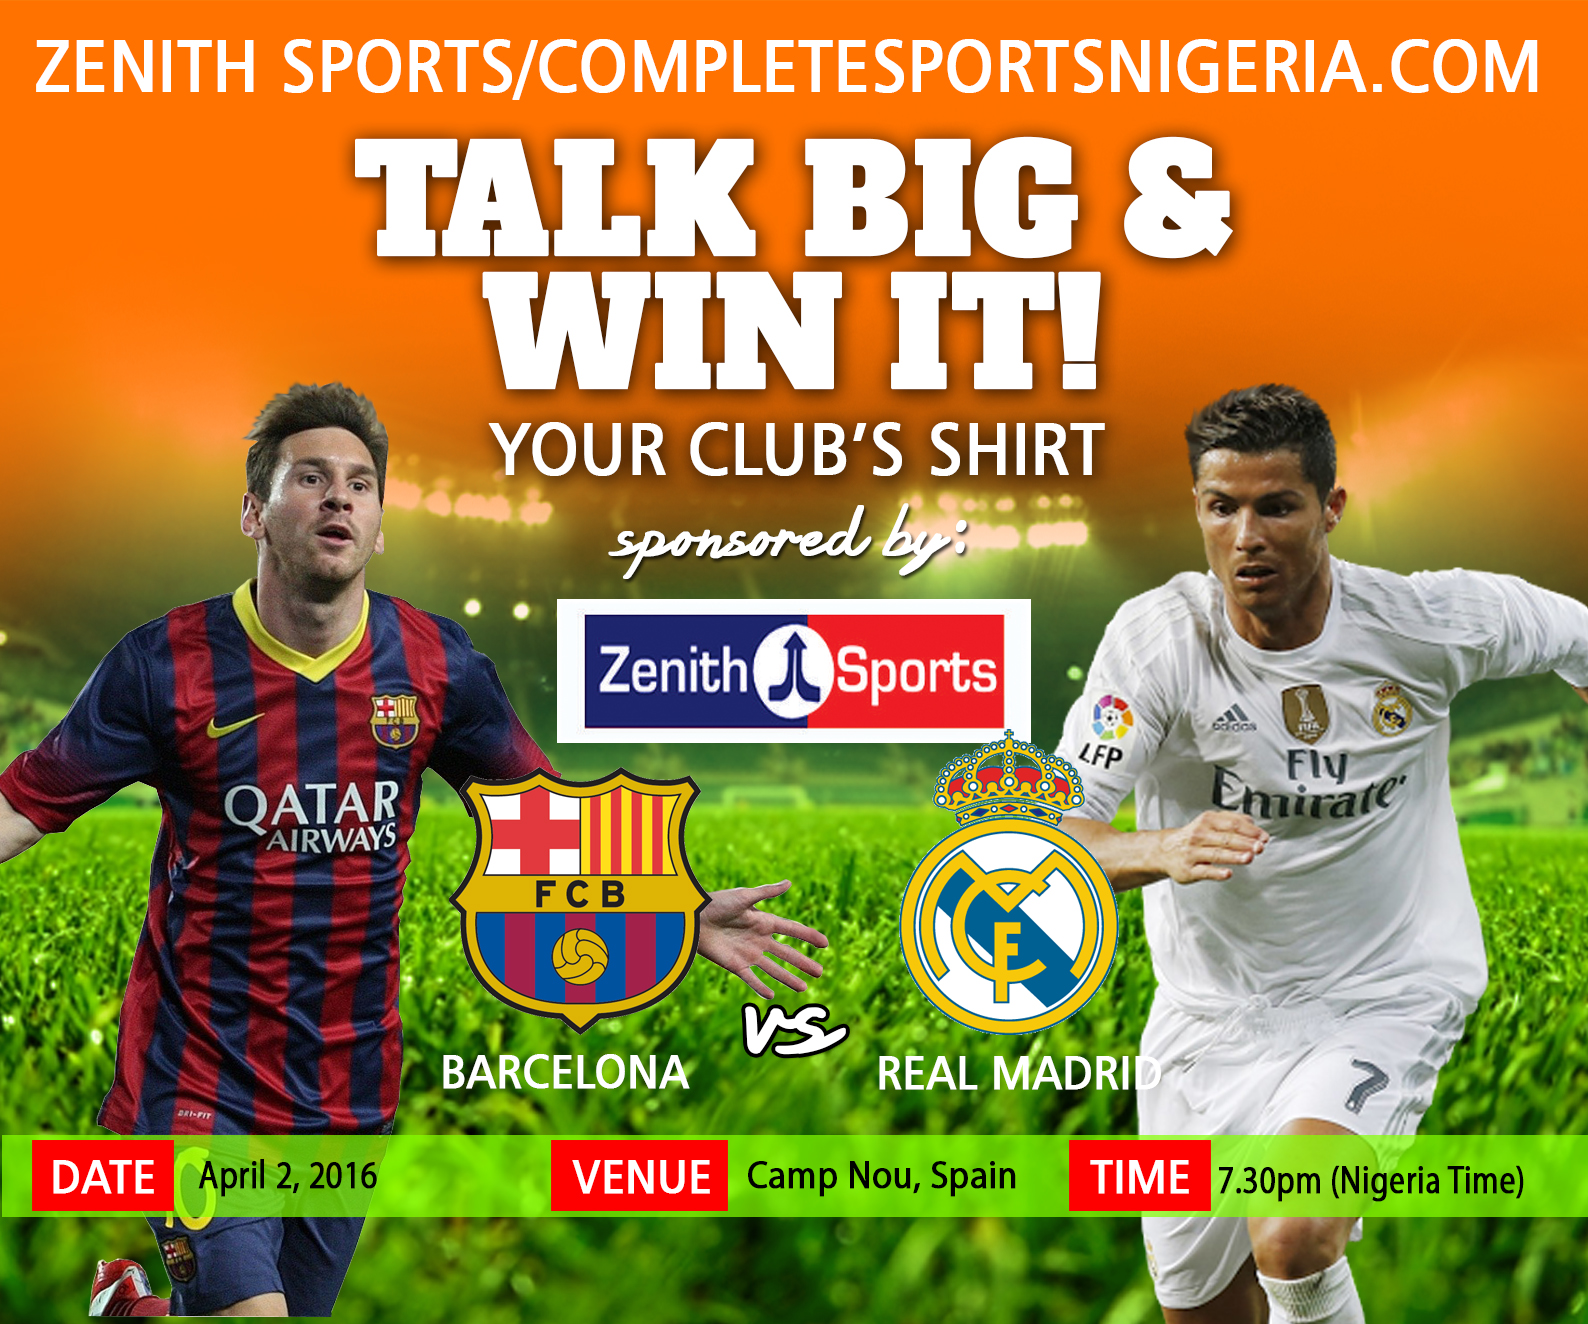 The Winners: Barcelona Vs Real Madrid, Talk Big & Win It!